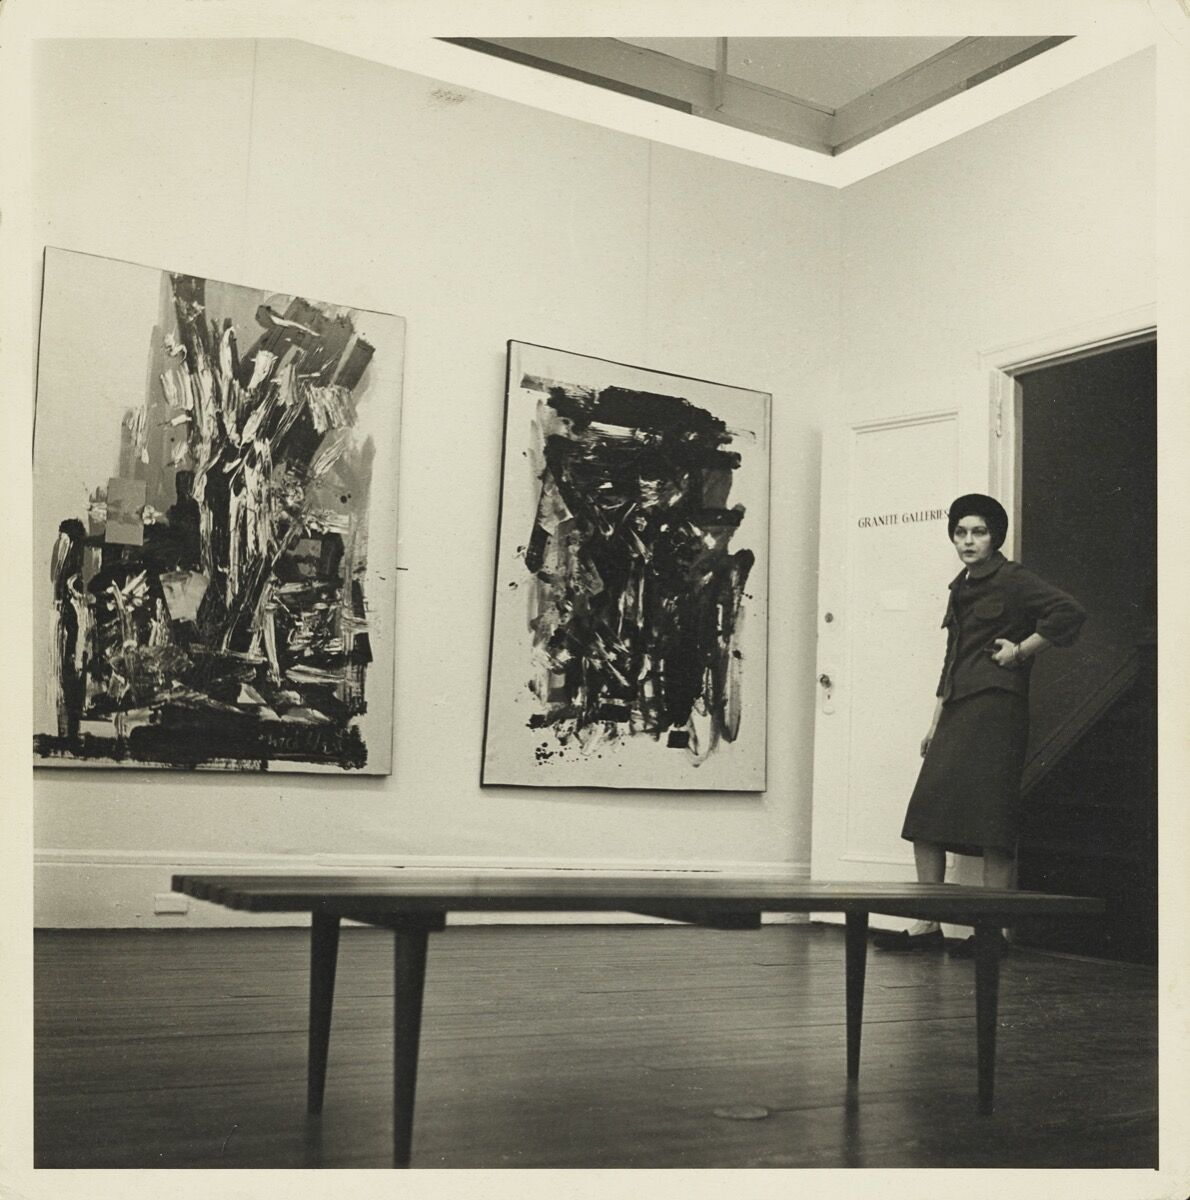 Michael West at Granite Galleries, 1963. Courtesy of the Collection of The Michael (Corinne) West Estate Archives.